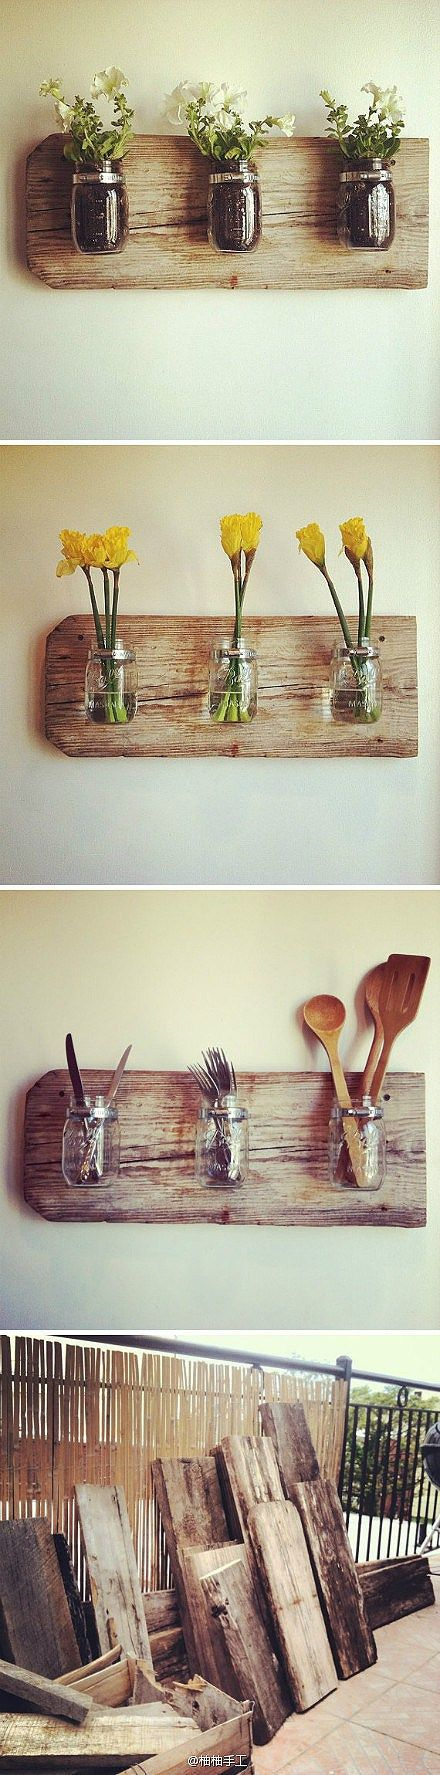 Mason-jar-interior-design-recycled-wood-back-kictchen-idea-etsy-pinterest